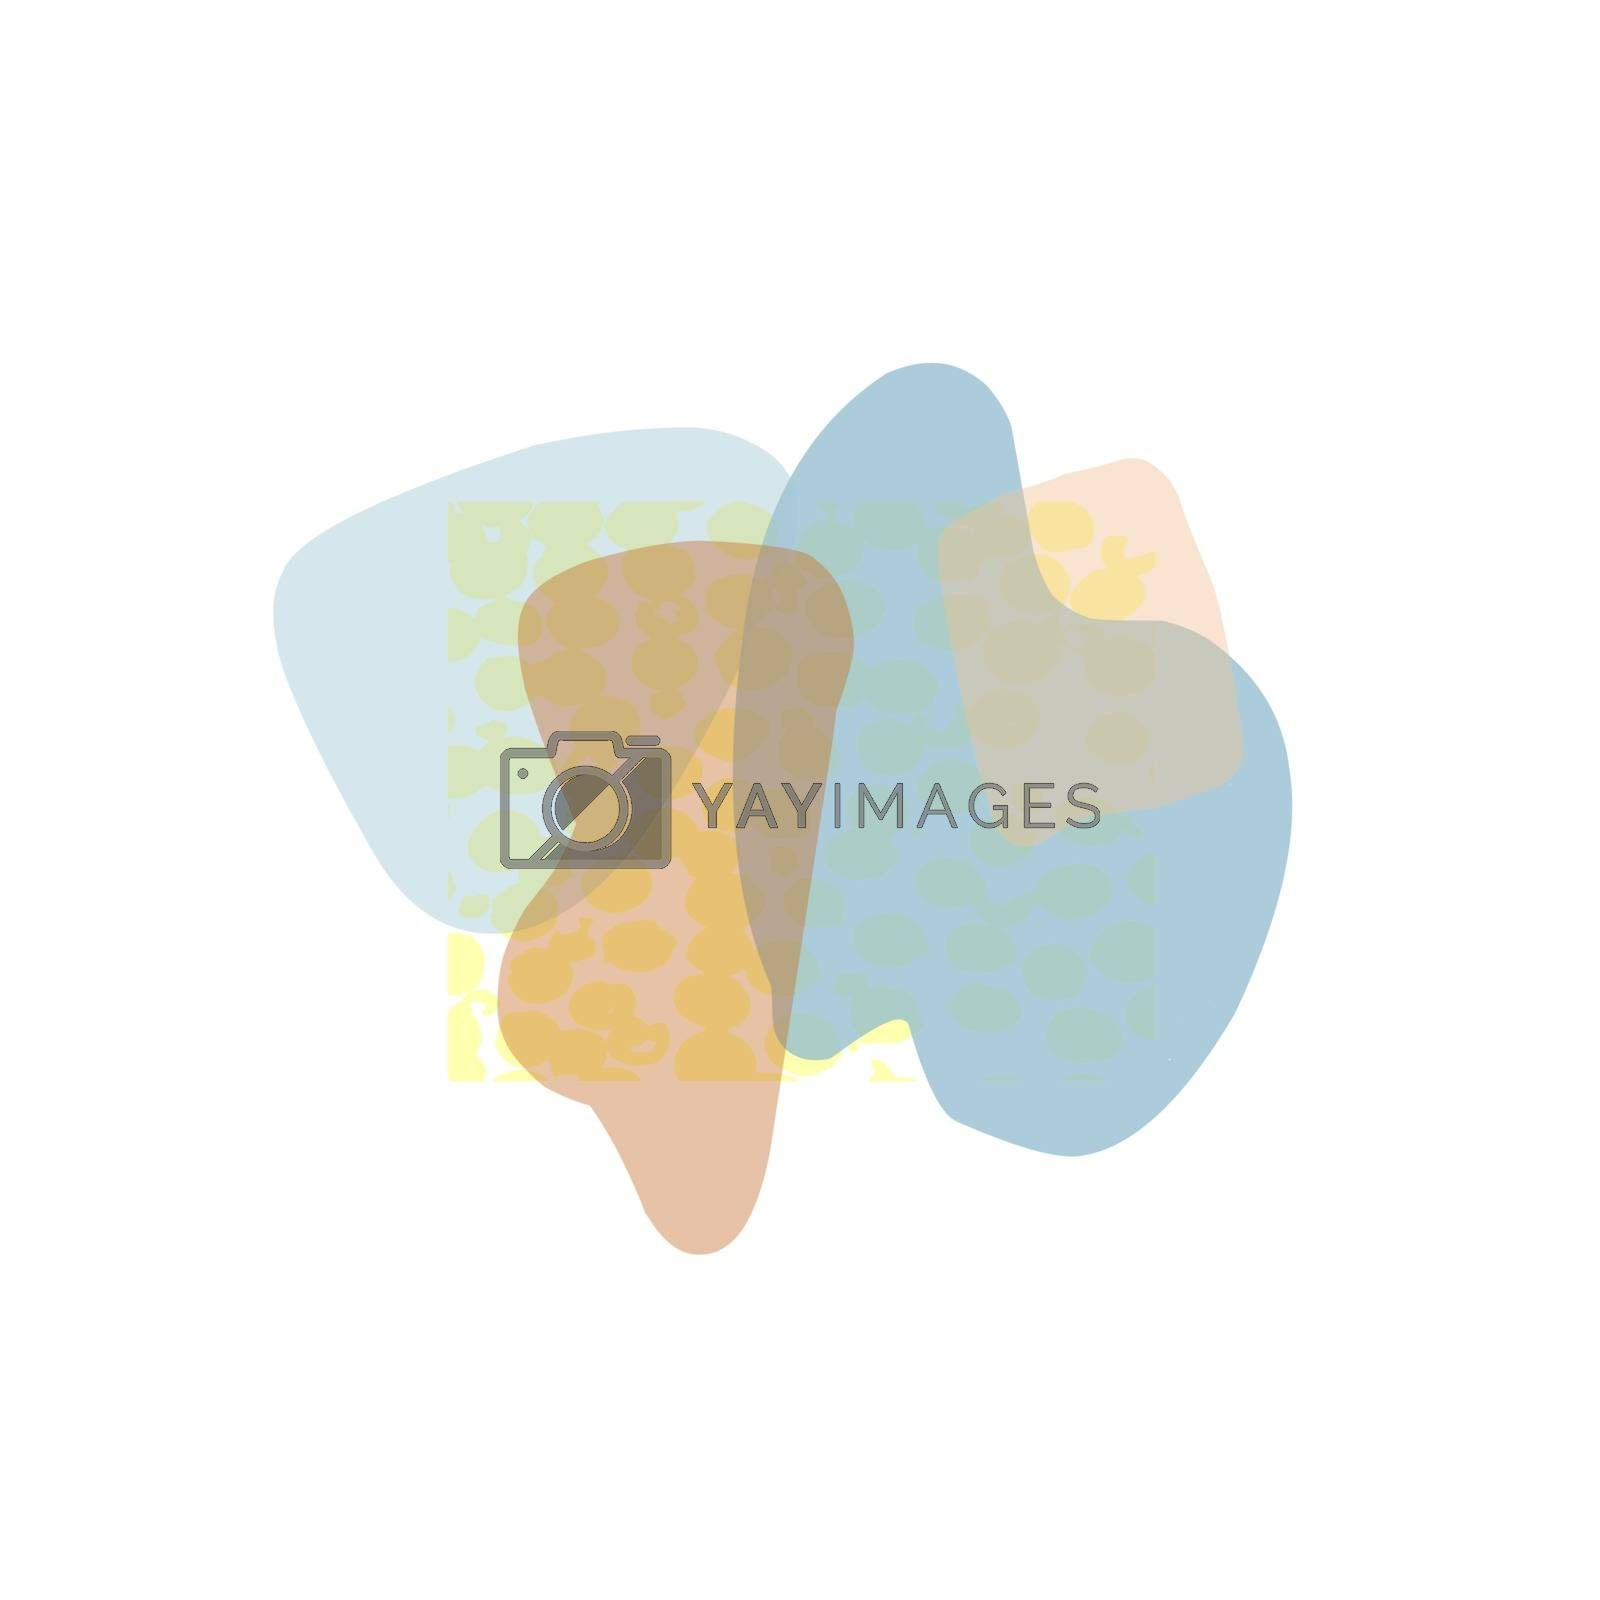 Abstract poster with geometric shapes and spots. Trendy design. Modern banner design.